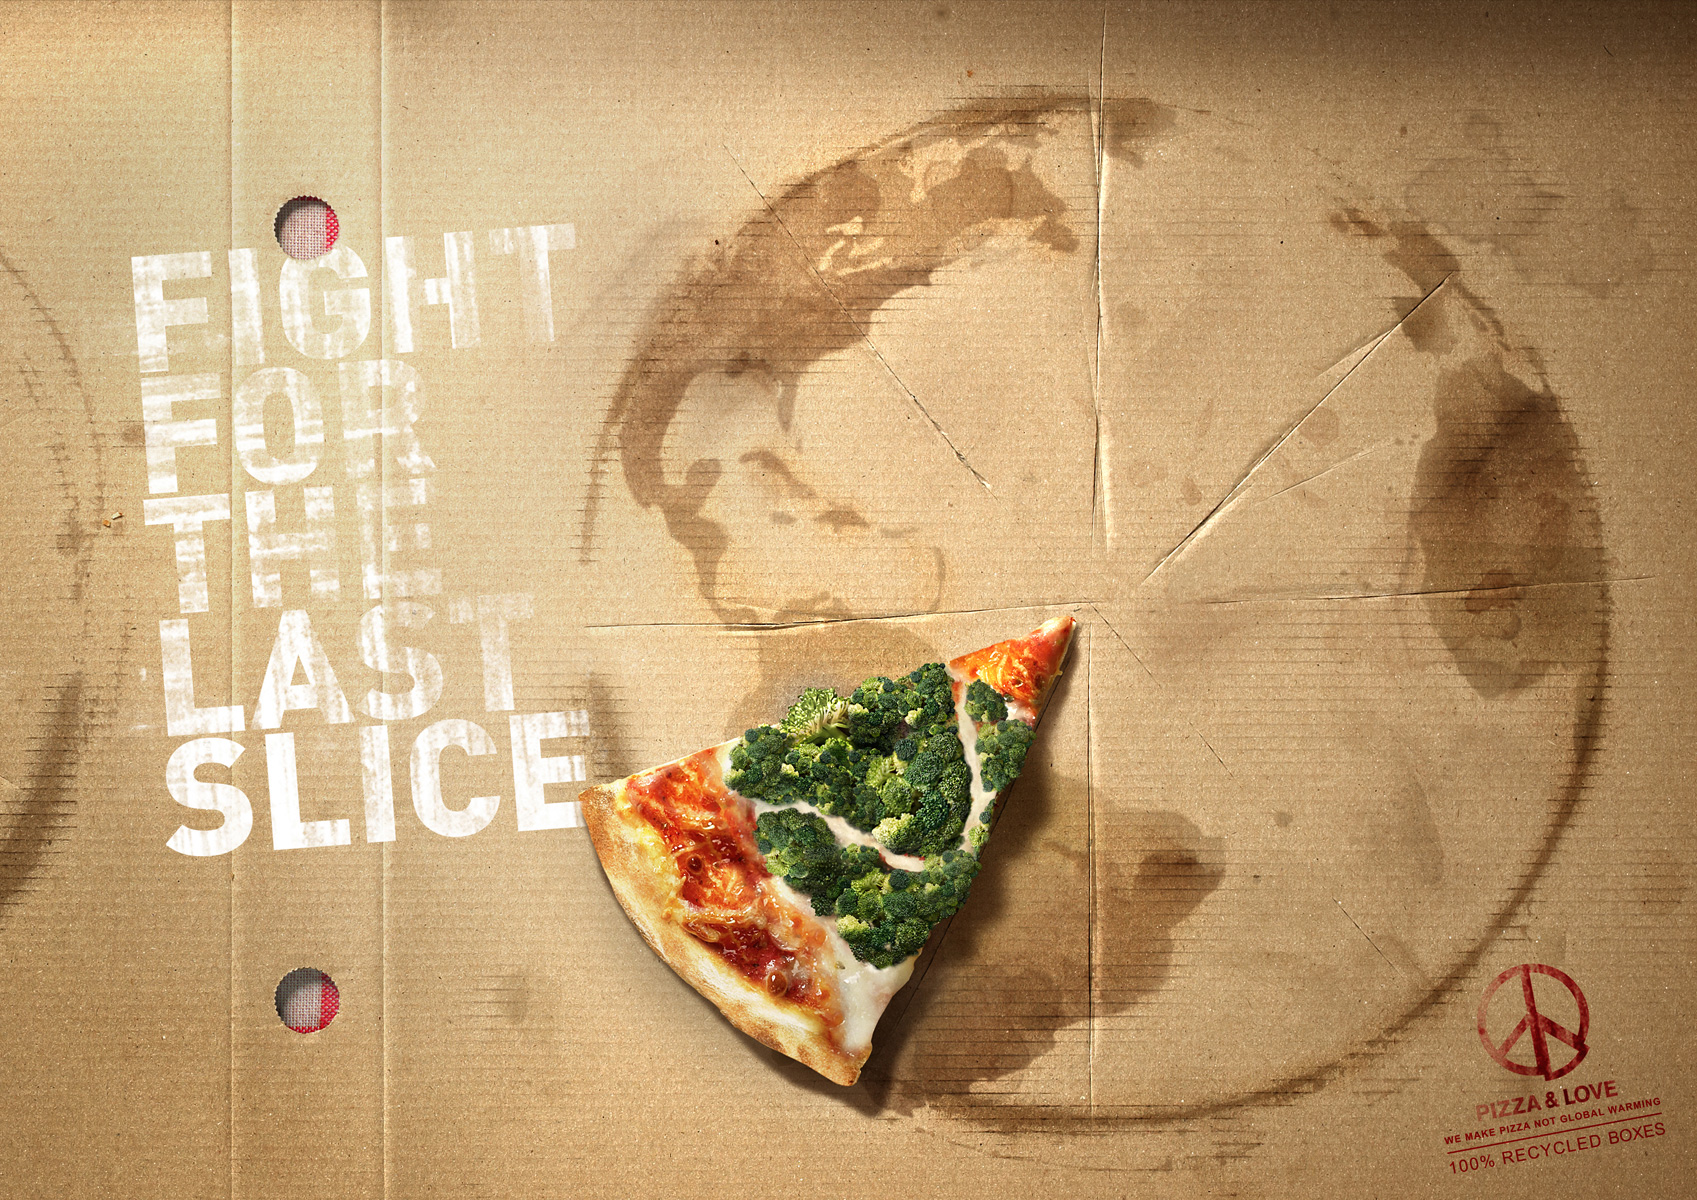 Poster presenting Pizza&Love campaign: their fight for the Arctc and for Amazonas